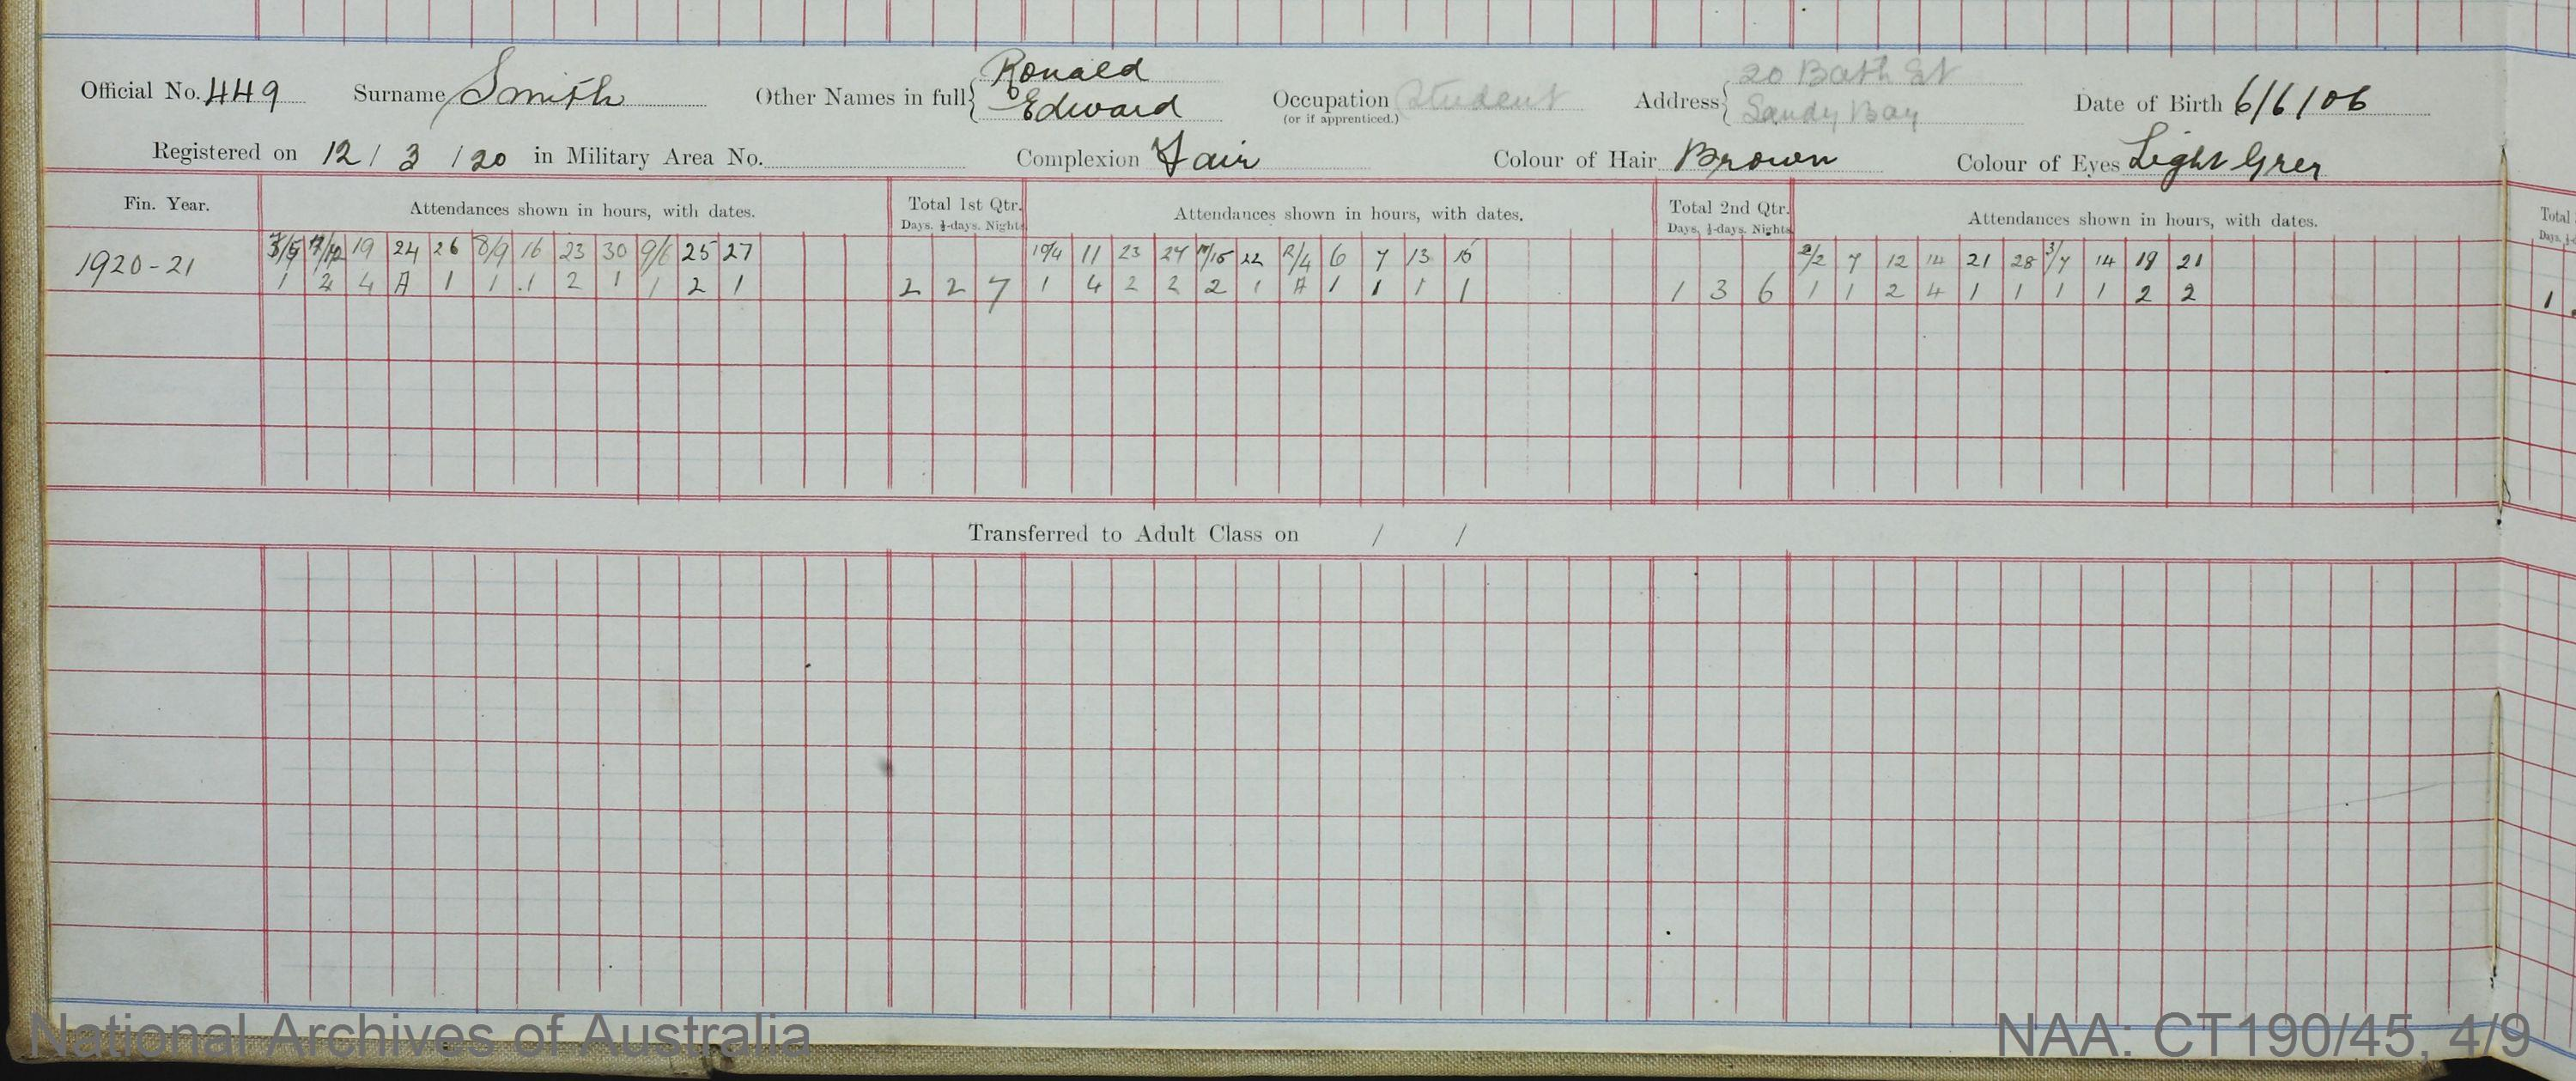 SURNAME - SMITH;  GIVEN NAME(S) - Ronald Edward;  OFFICIAL NUMBER - 449;  DATE OF BIRTH - 6 June 1906;  PLACE OF BIRTH - [Unknown];  NEXT OF KIN - [Unknown];  SERVICE/STATION -Tasmania;  REGISTRATION DATE - 12 March 1920